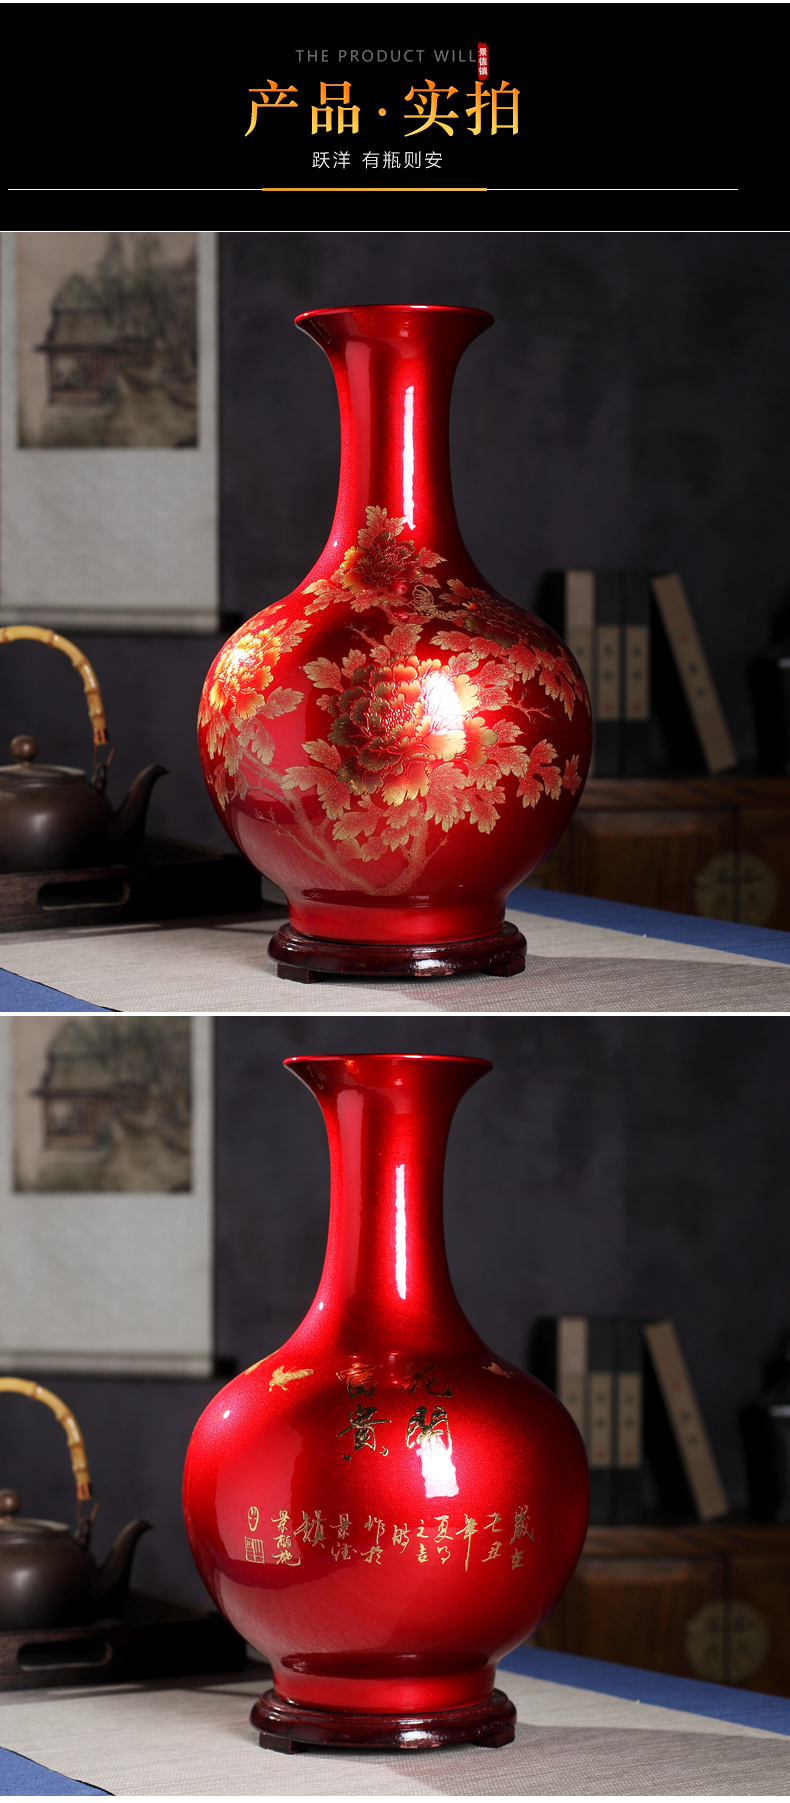 Crystal glaze Chinese red red gold sand vase furnishing articles three - piece jingdezhen large decorative arts and crafts